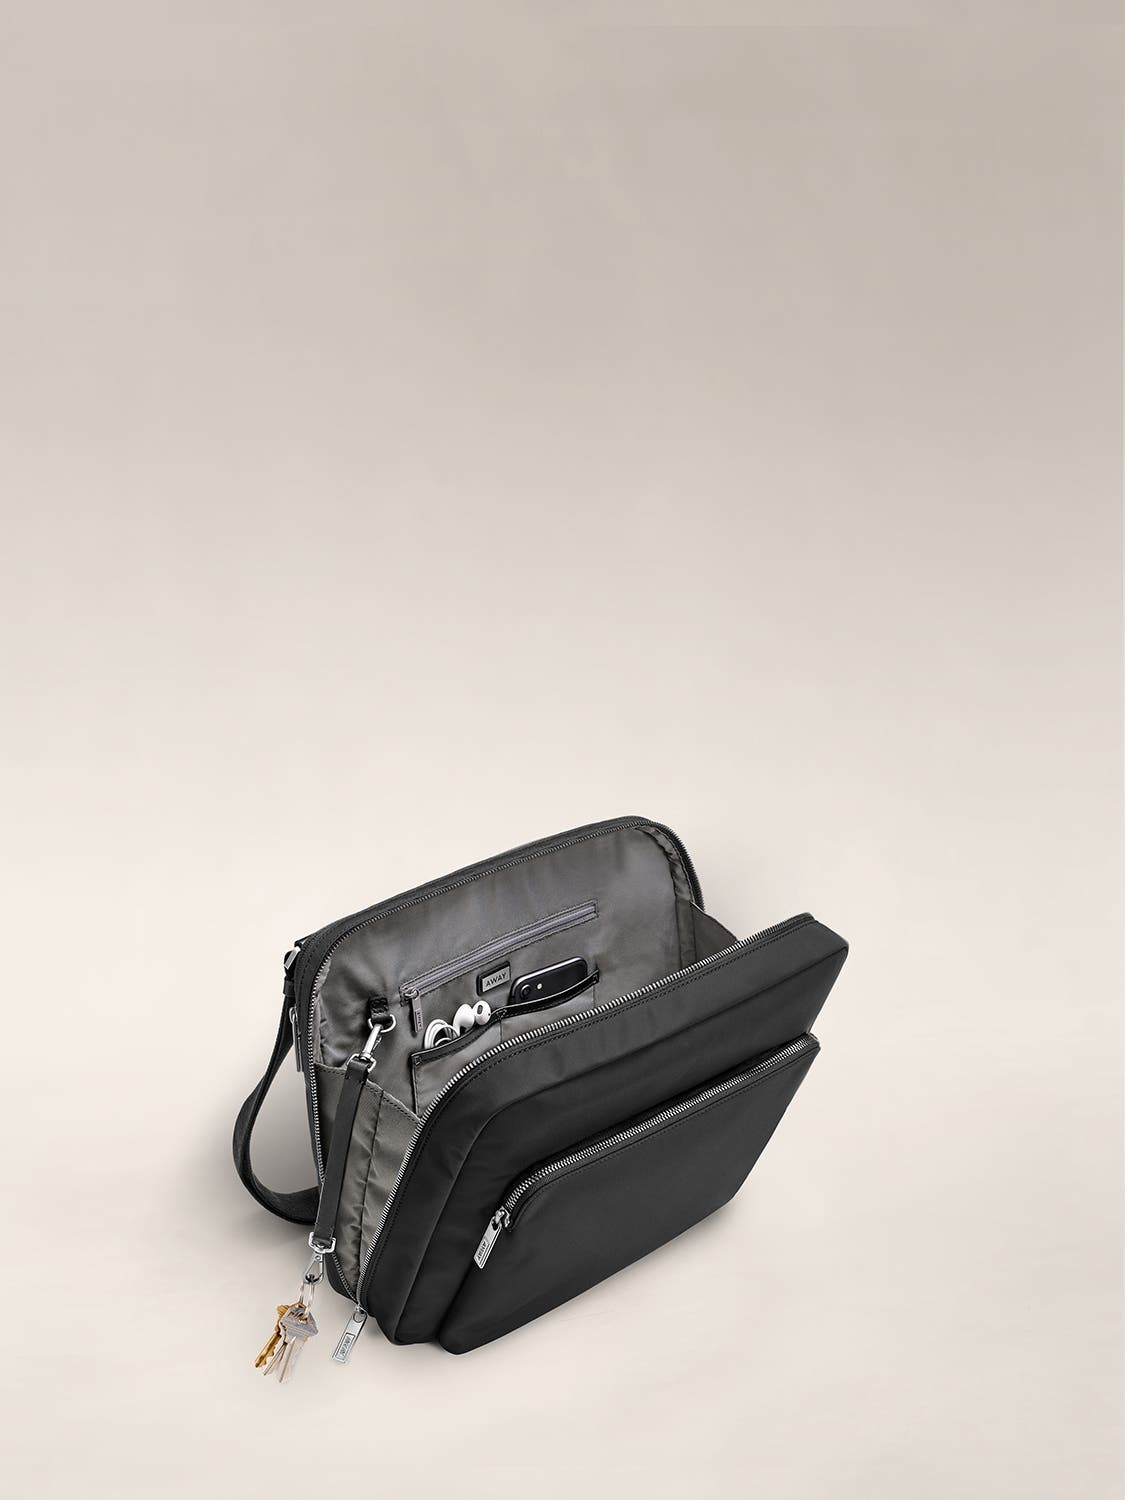 Open inside view of a black messenger bag with grey lining with technical accessories organized in small pockets.